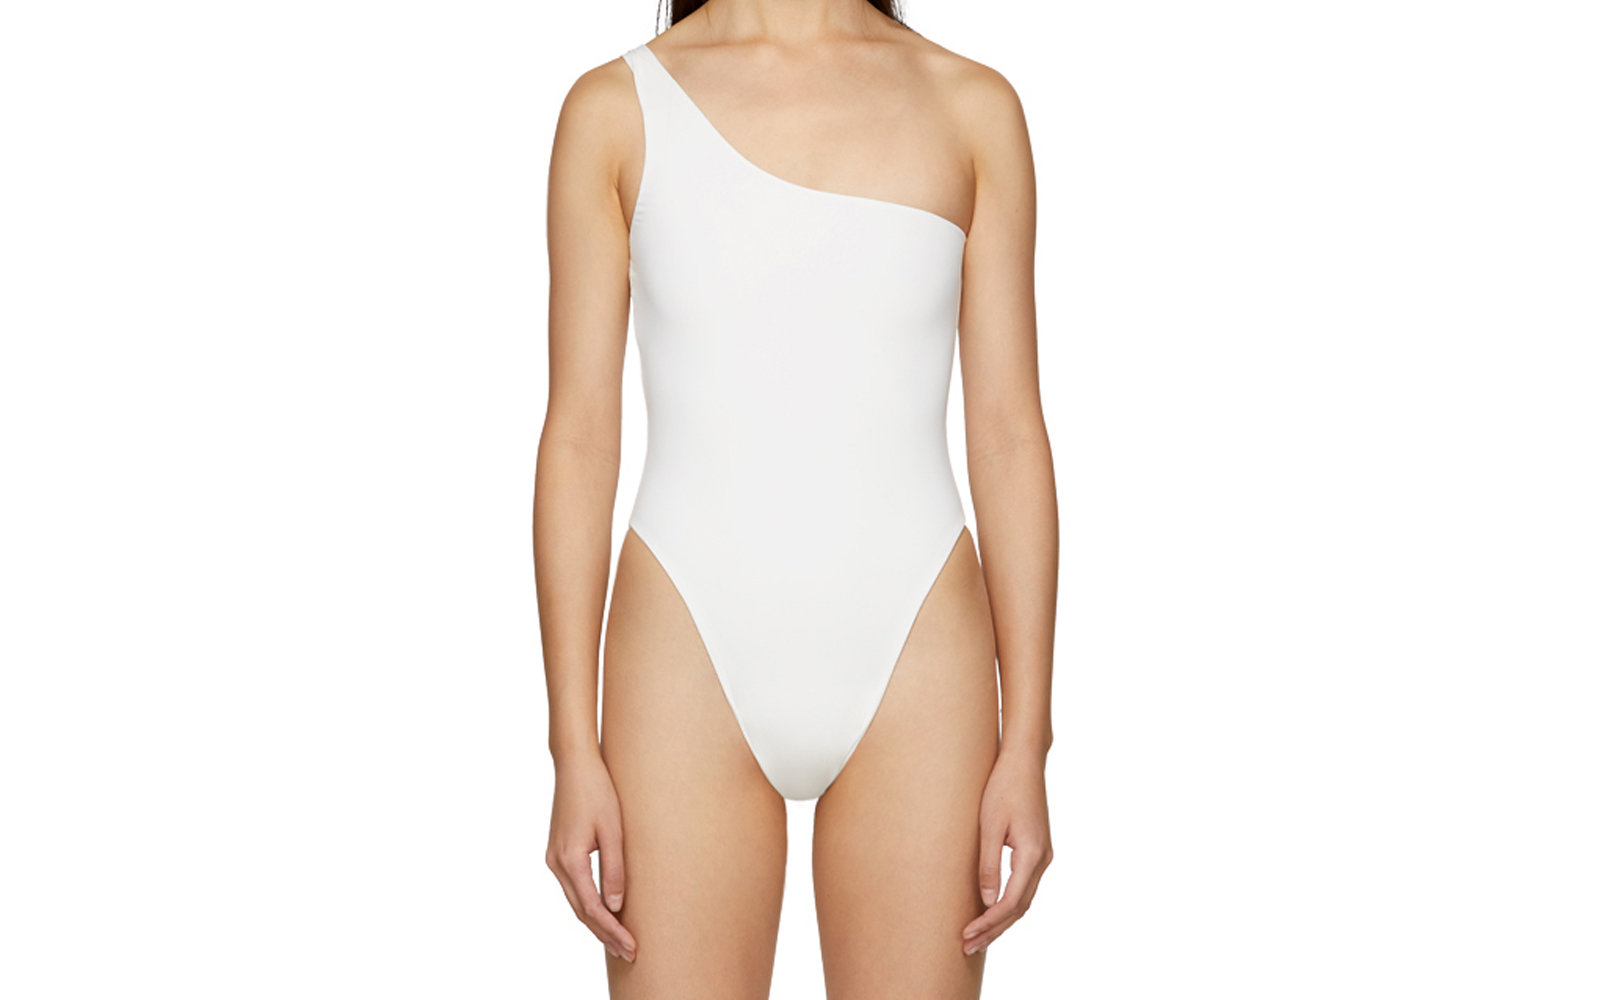 Myraswim White Rhoads One-piece Swimsuit